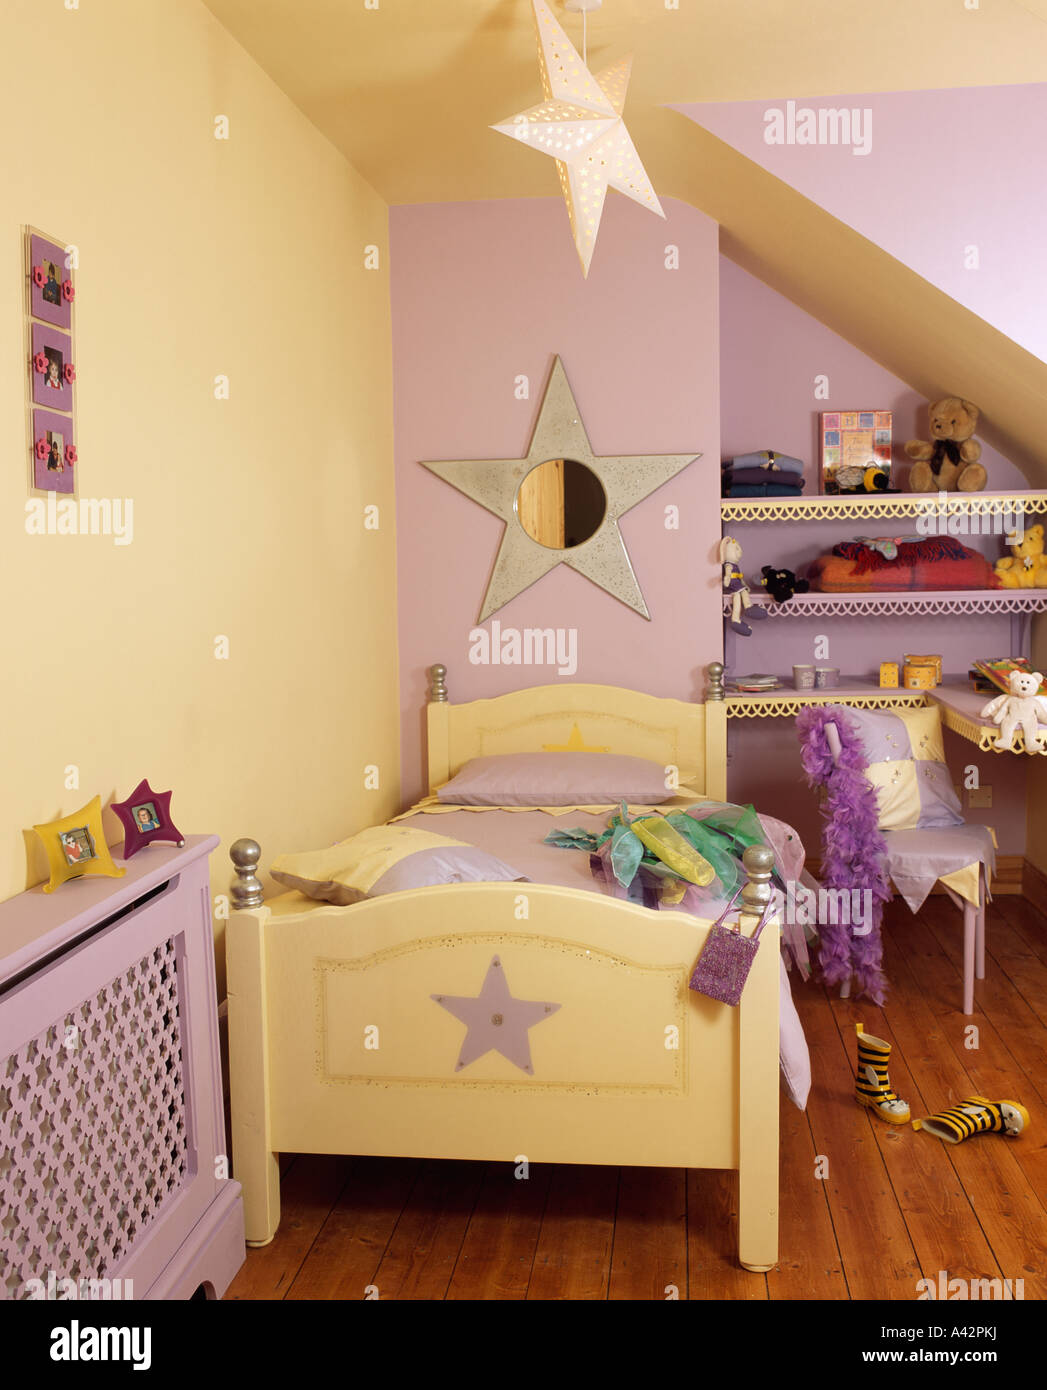 Child\'s bedroom with pastel yellow and purple walls and pale yellow ...